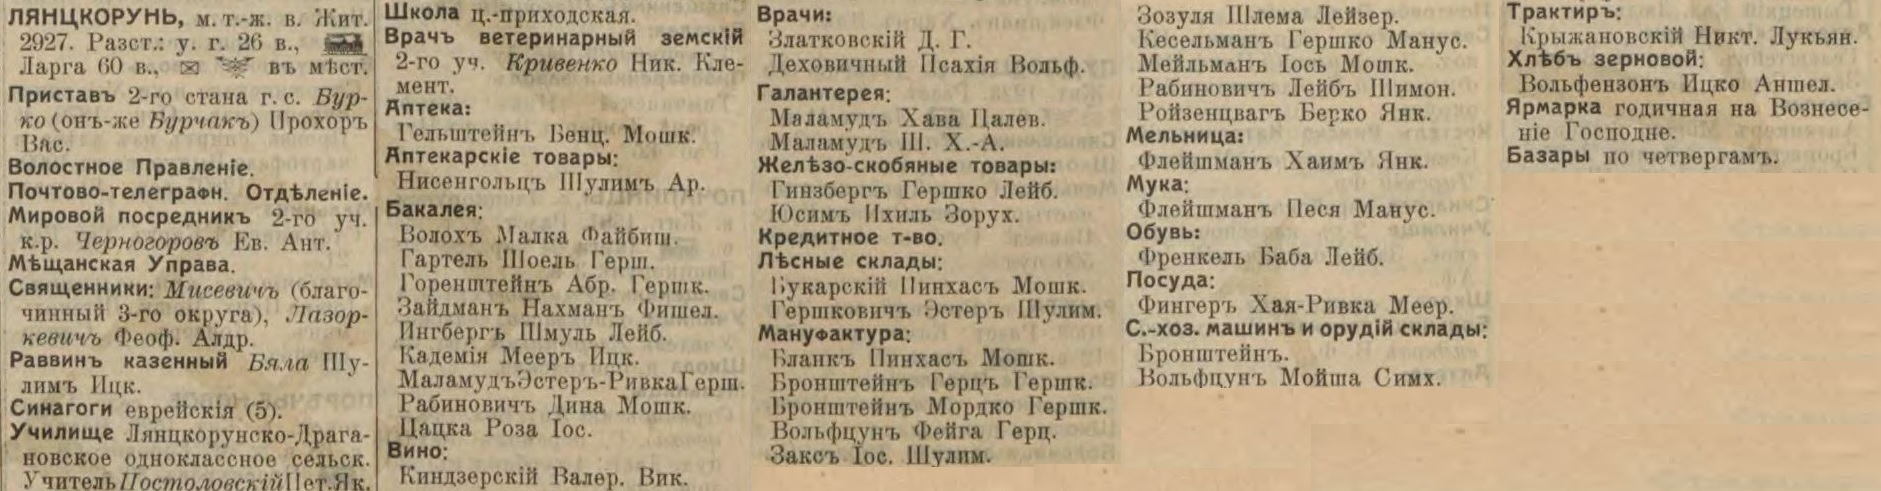 Liantskorun entrepreneurs list from Russian Empire Business Directories by 1913